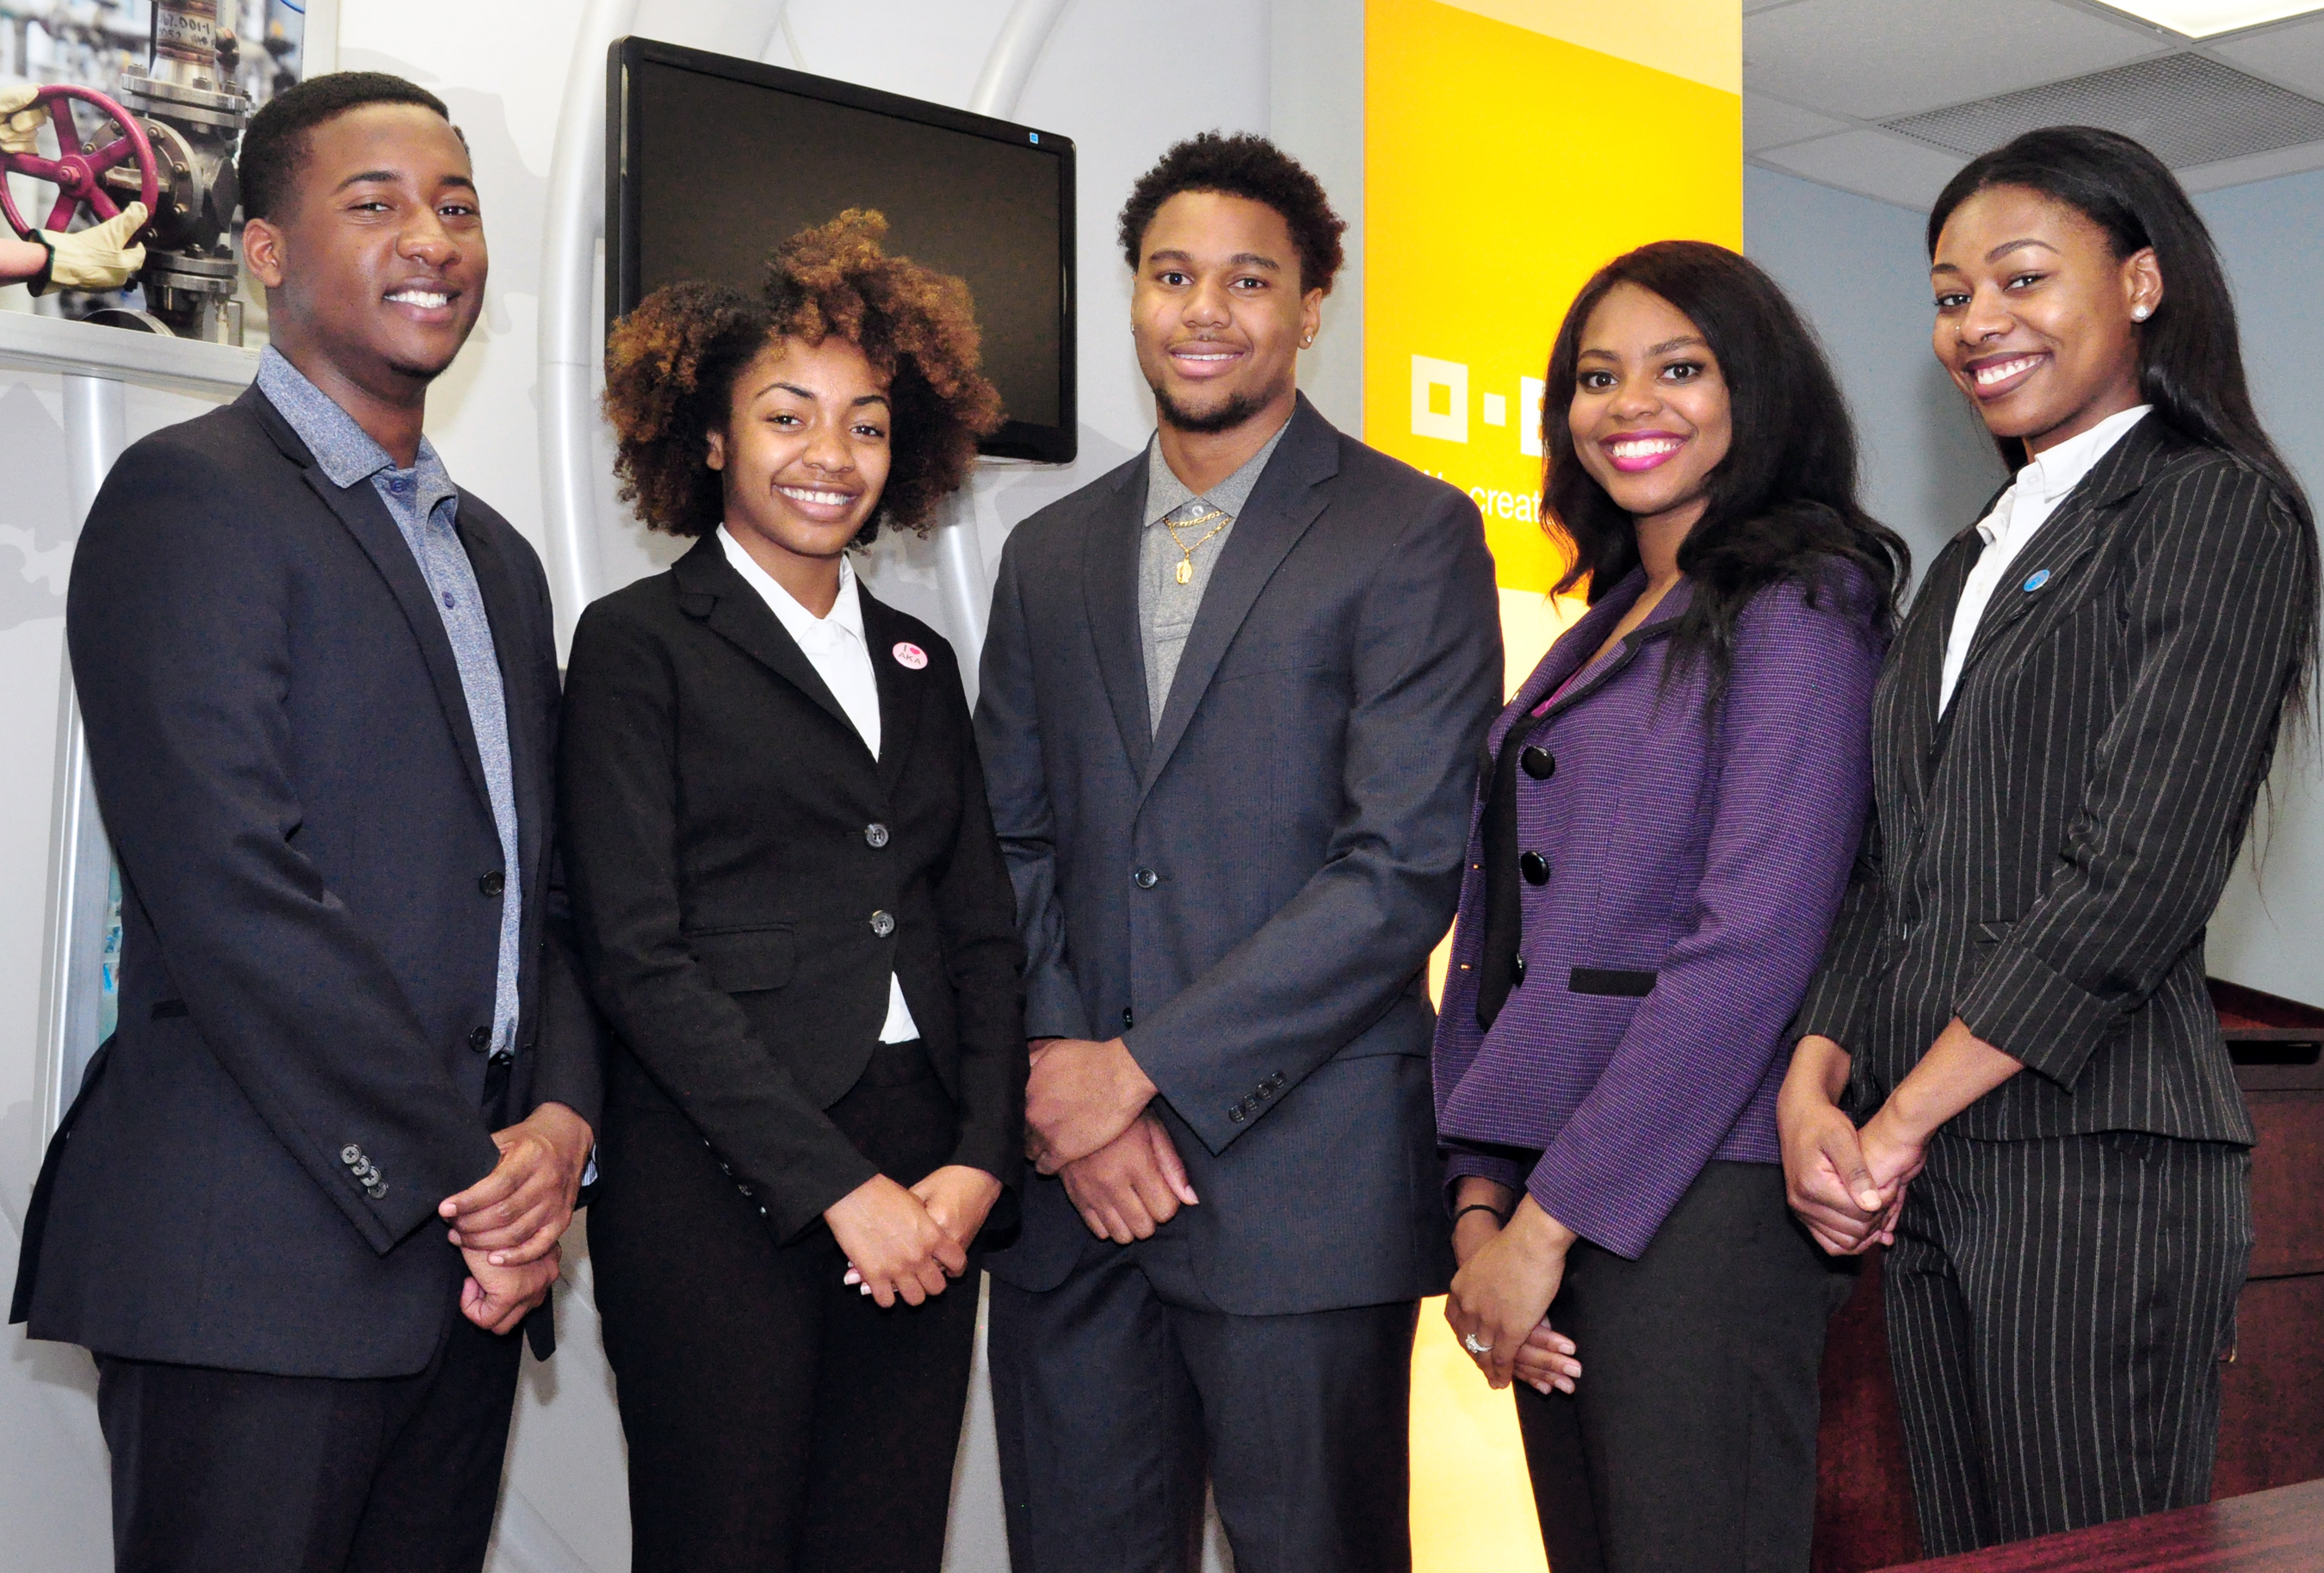 SU Baton Rouge students participating in the 2016 Belize Study Abroad program May 15 - June 5 are pictured (left-right): Zachary Williams, Ja'Nae McGee, Jeremiah West, Alana Stevenson, and Raven Buntyn.